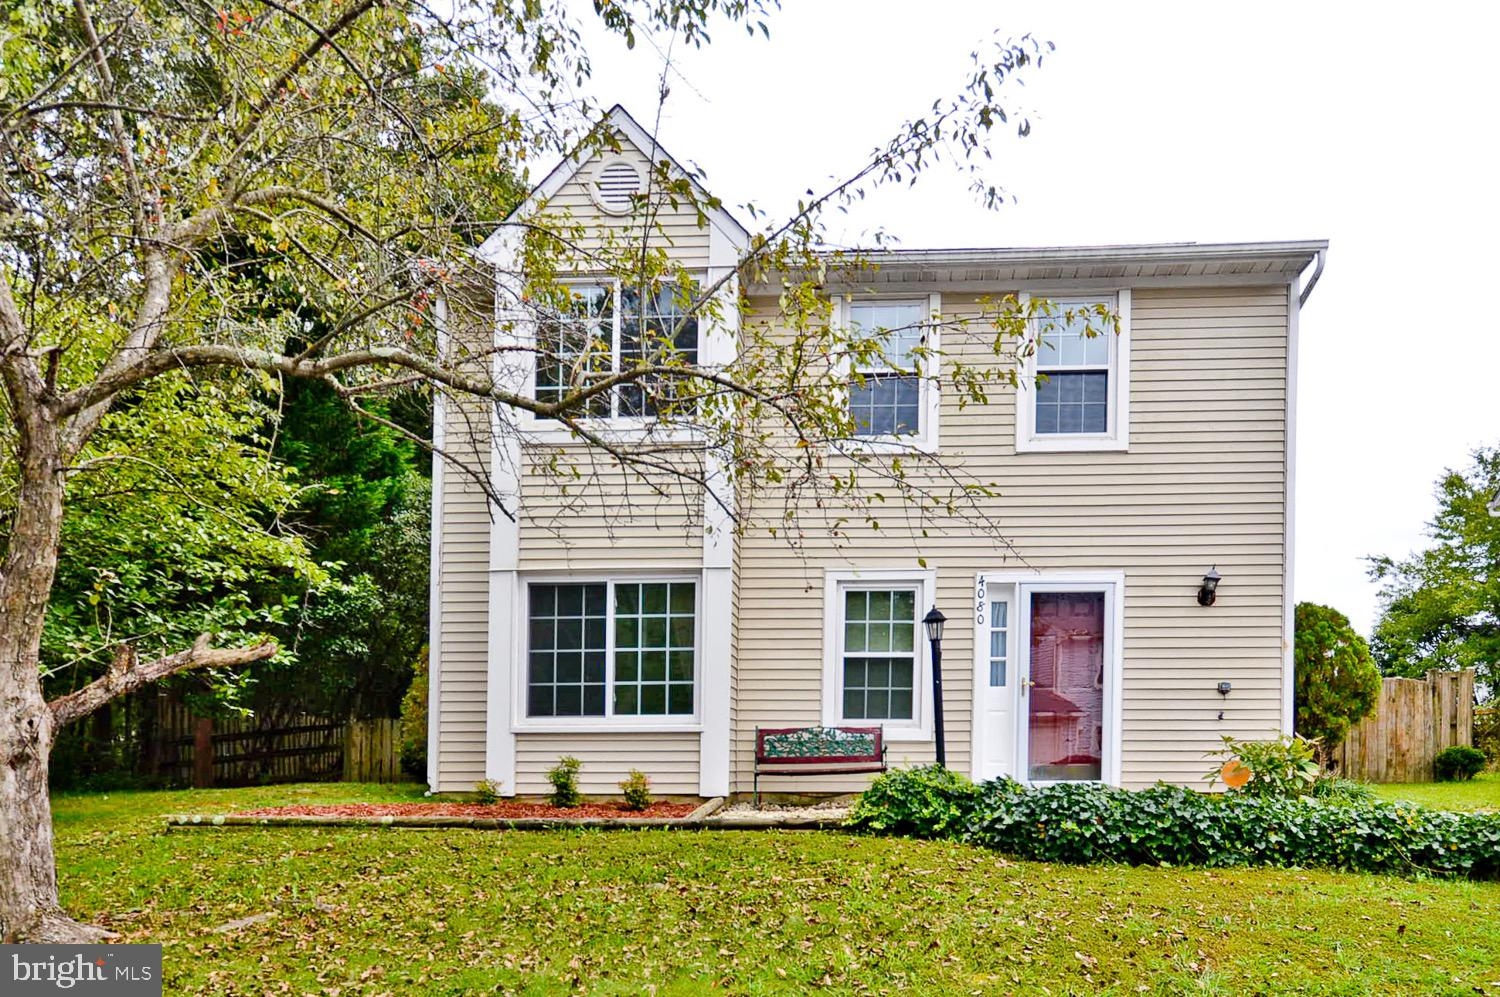 This 3-bedroom, 2.5bath single-family home is READY for you and your family.  New countertops, windo